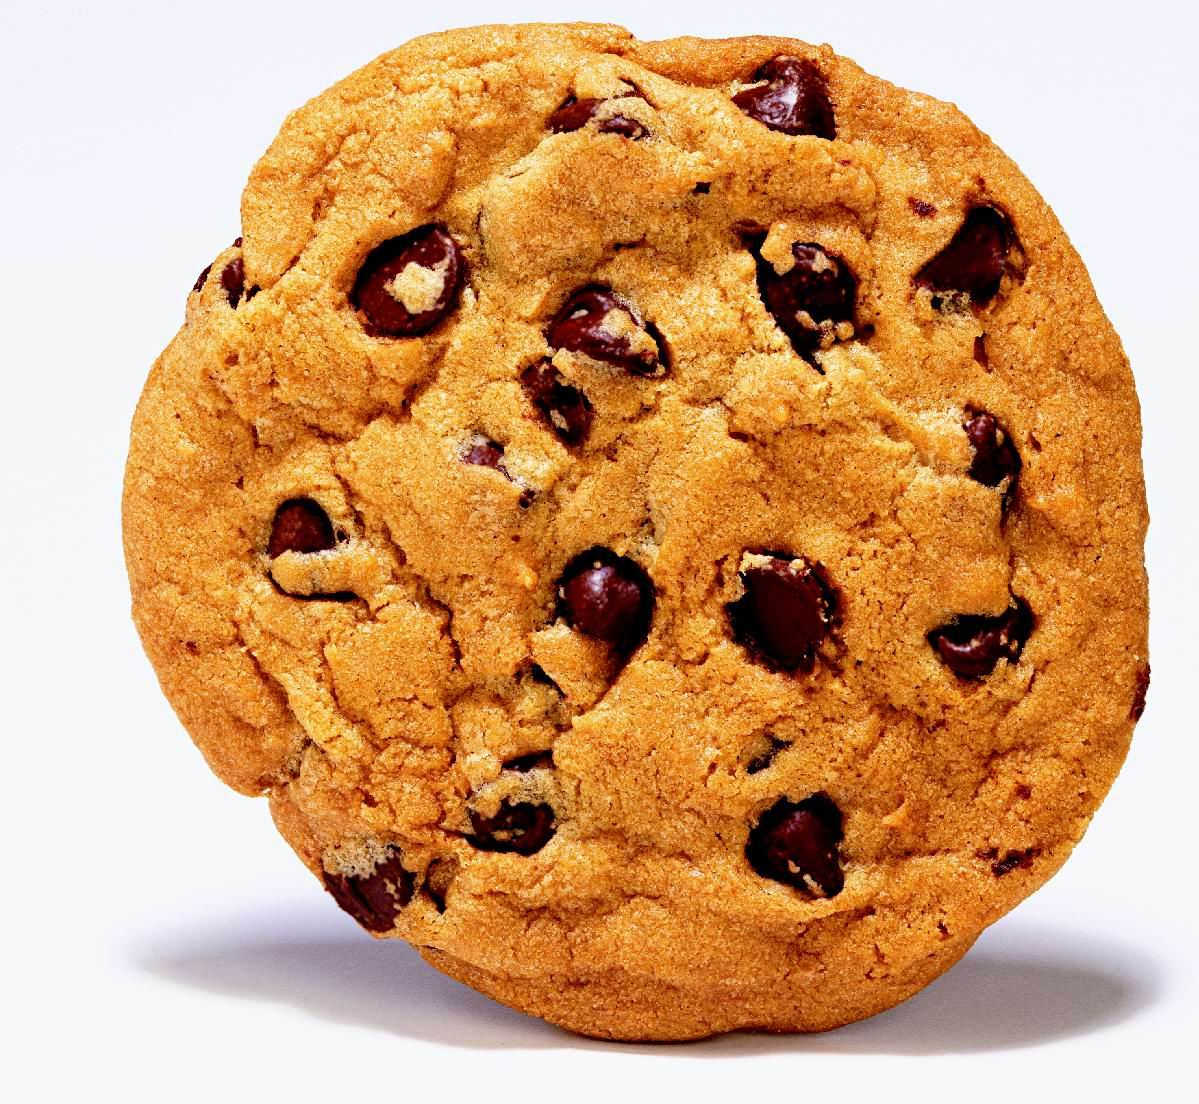 http://vignette2.wikia.nocookie.net/mspafetchmodus/images/a/ab/Chocolate_chip_cookie.jpg/revision/latest?cb=20100726200146